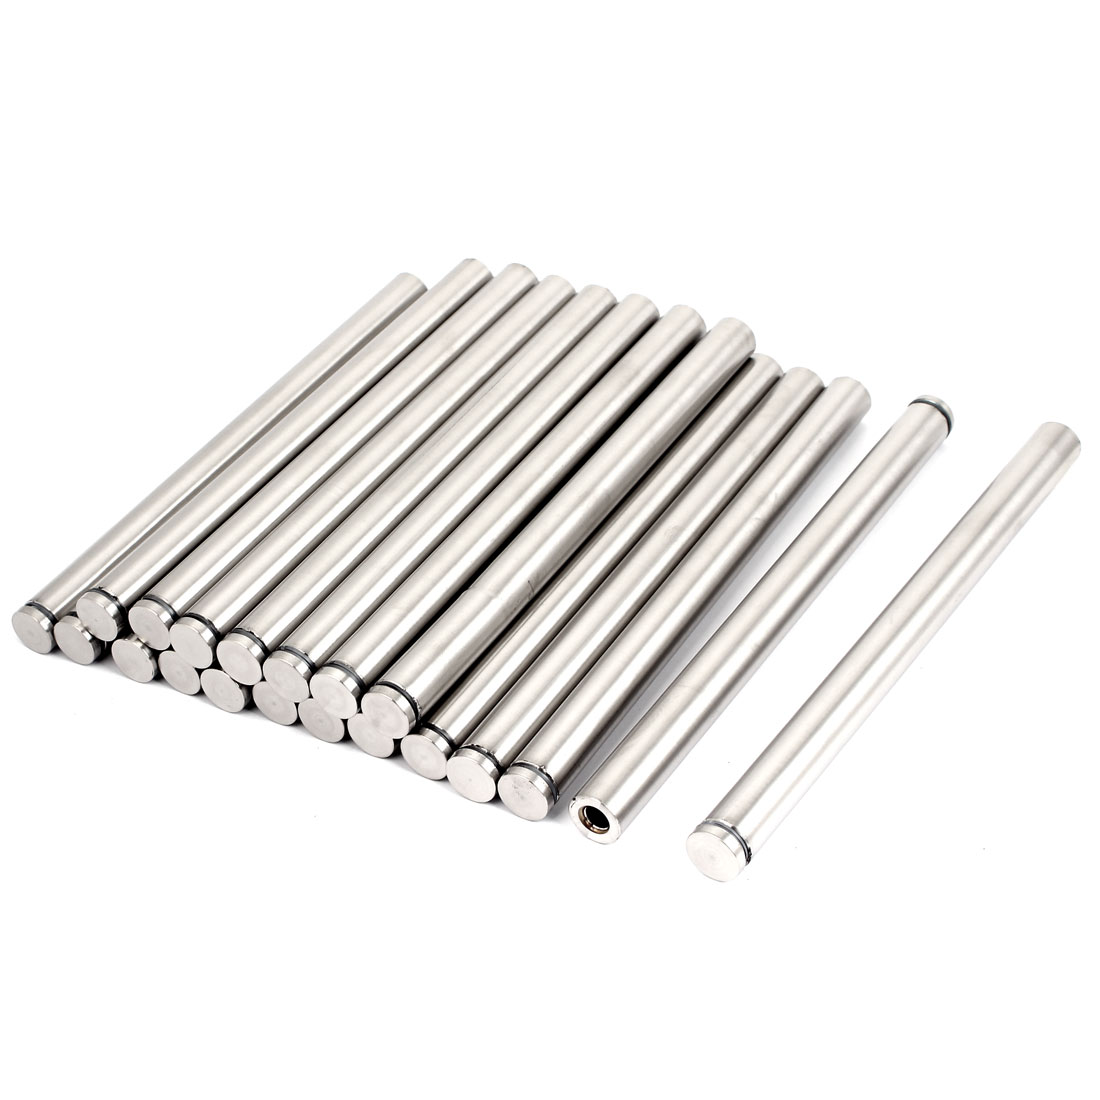 20pcs 19mmx250mm Stainless Steel Advertising Screw Nails Glass Standoffs Pin